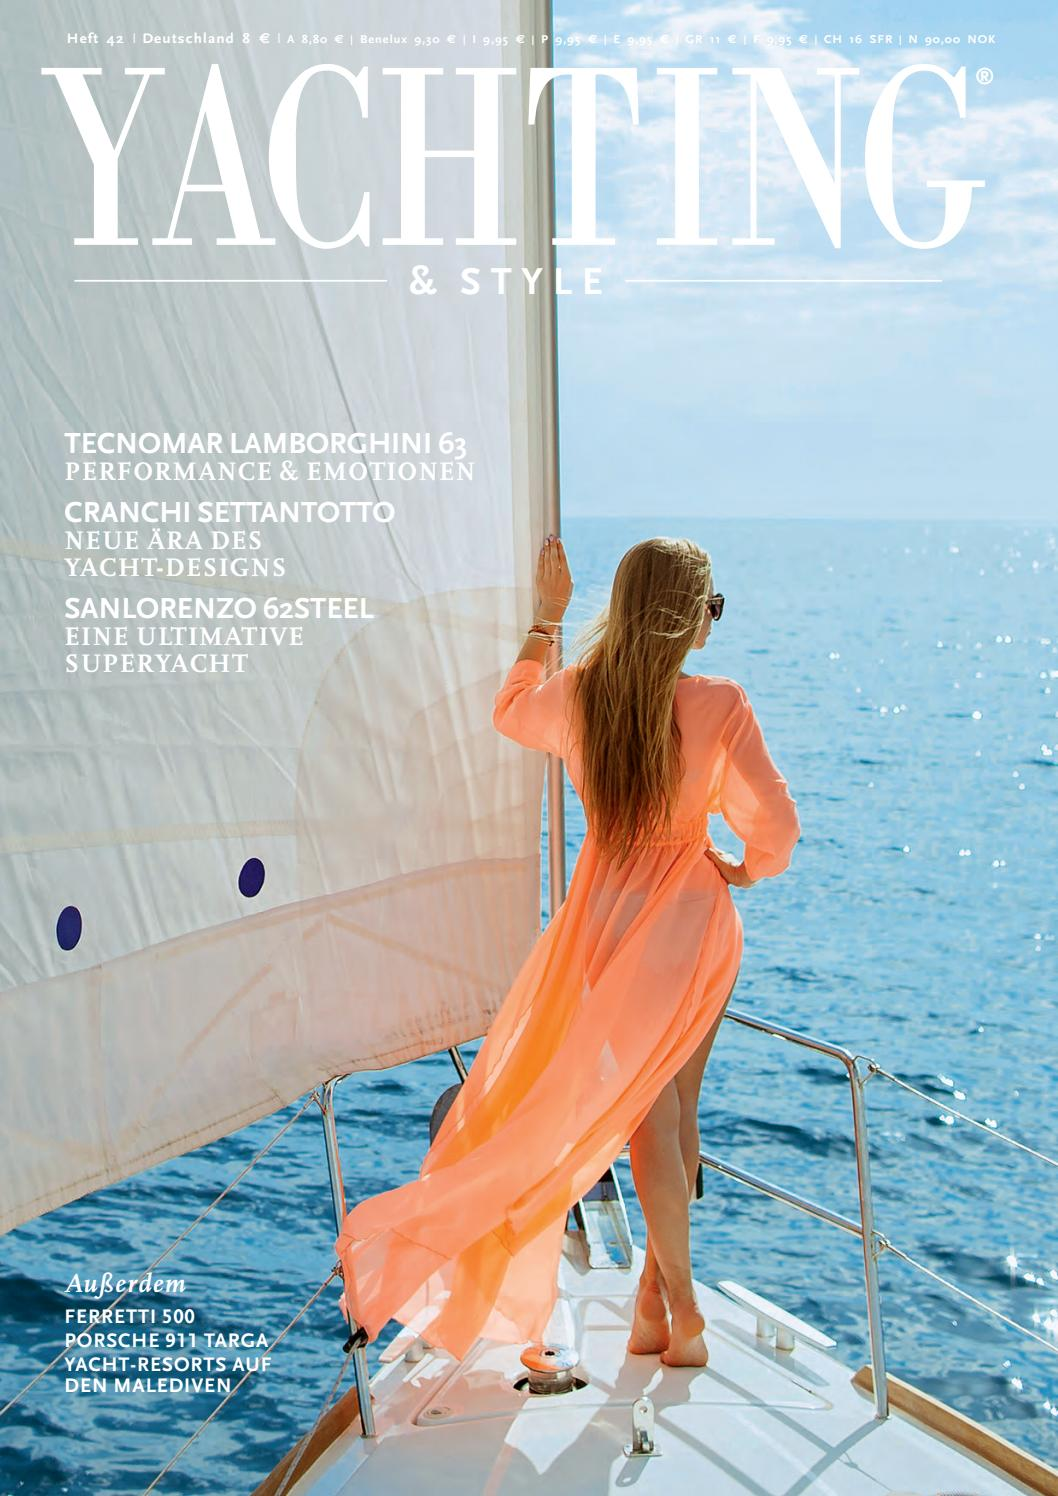 Yachting Style 42 By Klocke Verlag Issuu